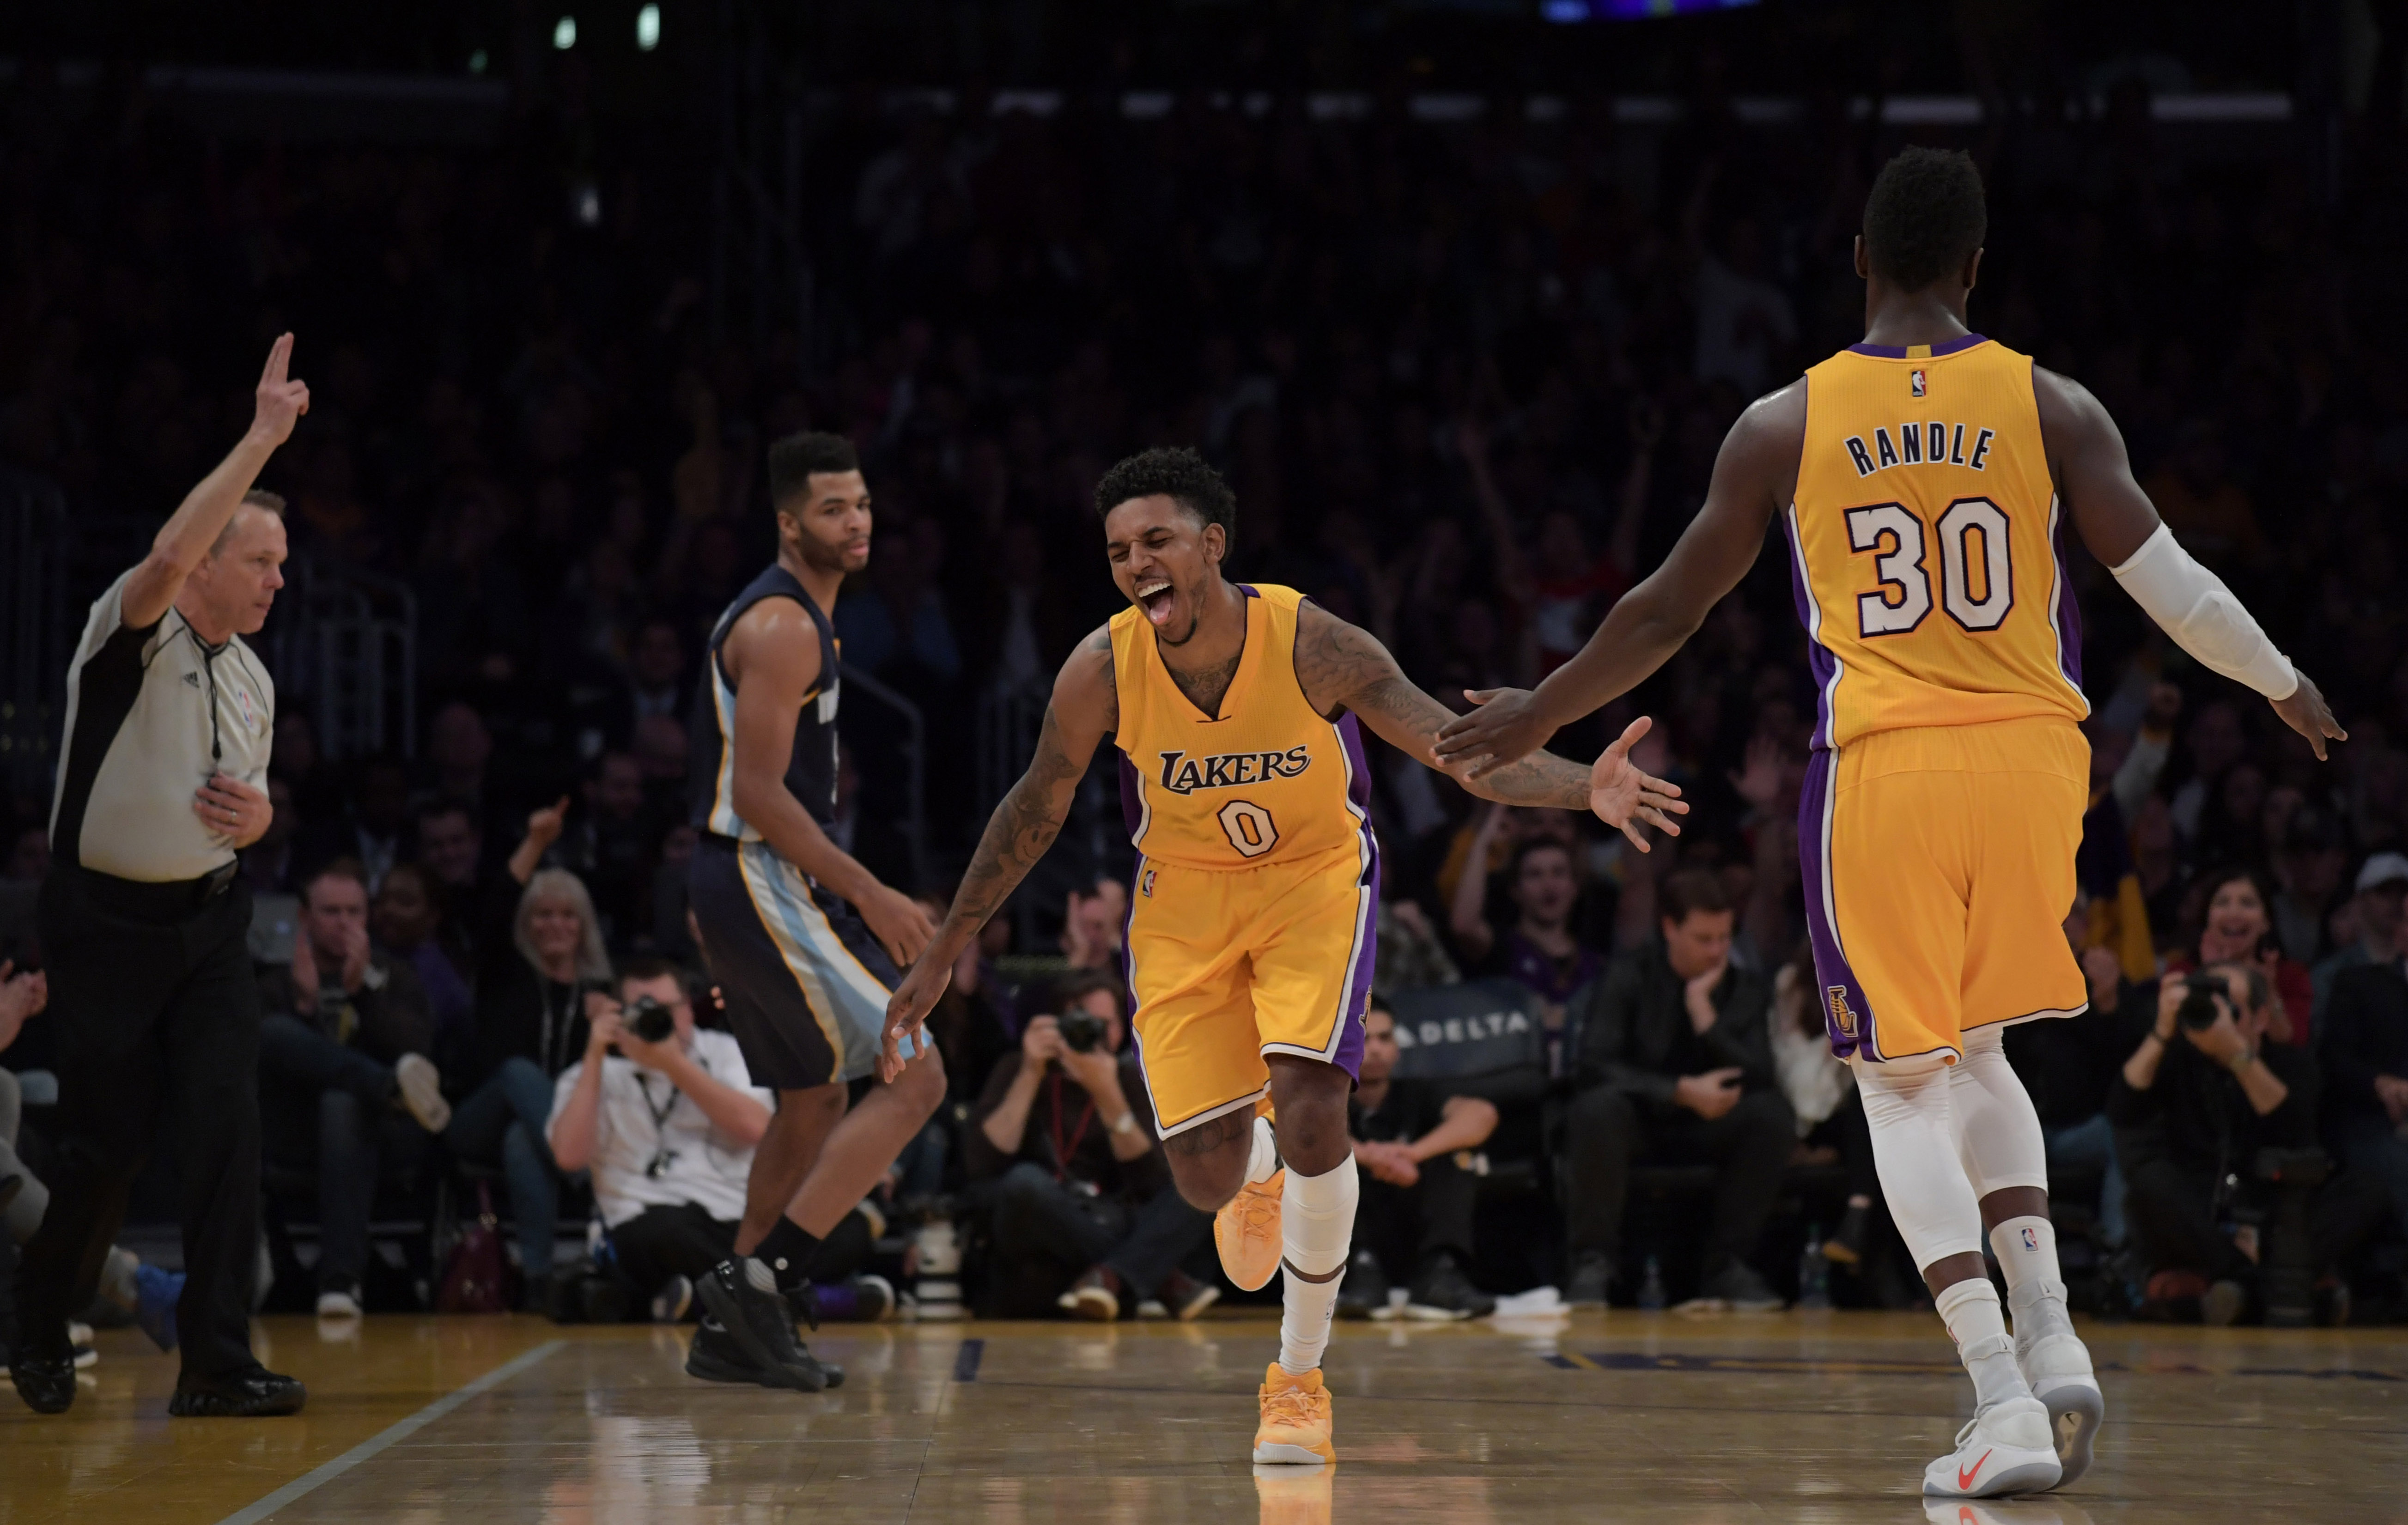 Jan 3, 2017; Los Angeles, CA, USA; Los Angeles Lakers guard Nick Young (0) is congratulated by Los Angeles Lakers forward Julius Randle (30) after a 3-point basket in the first half against the Memphis Grizzlies during a NBA game at Staples Center. Mandatory Credit: Kirby Lee-USA TODAY Sports